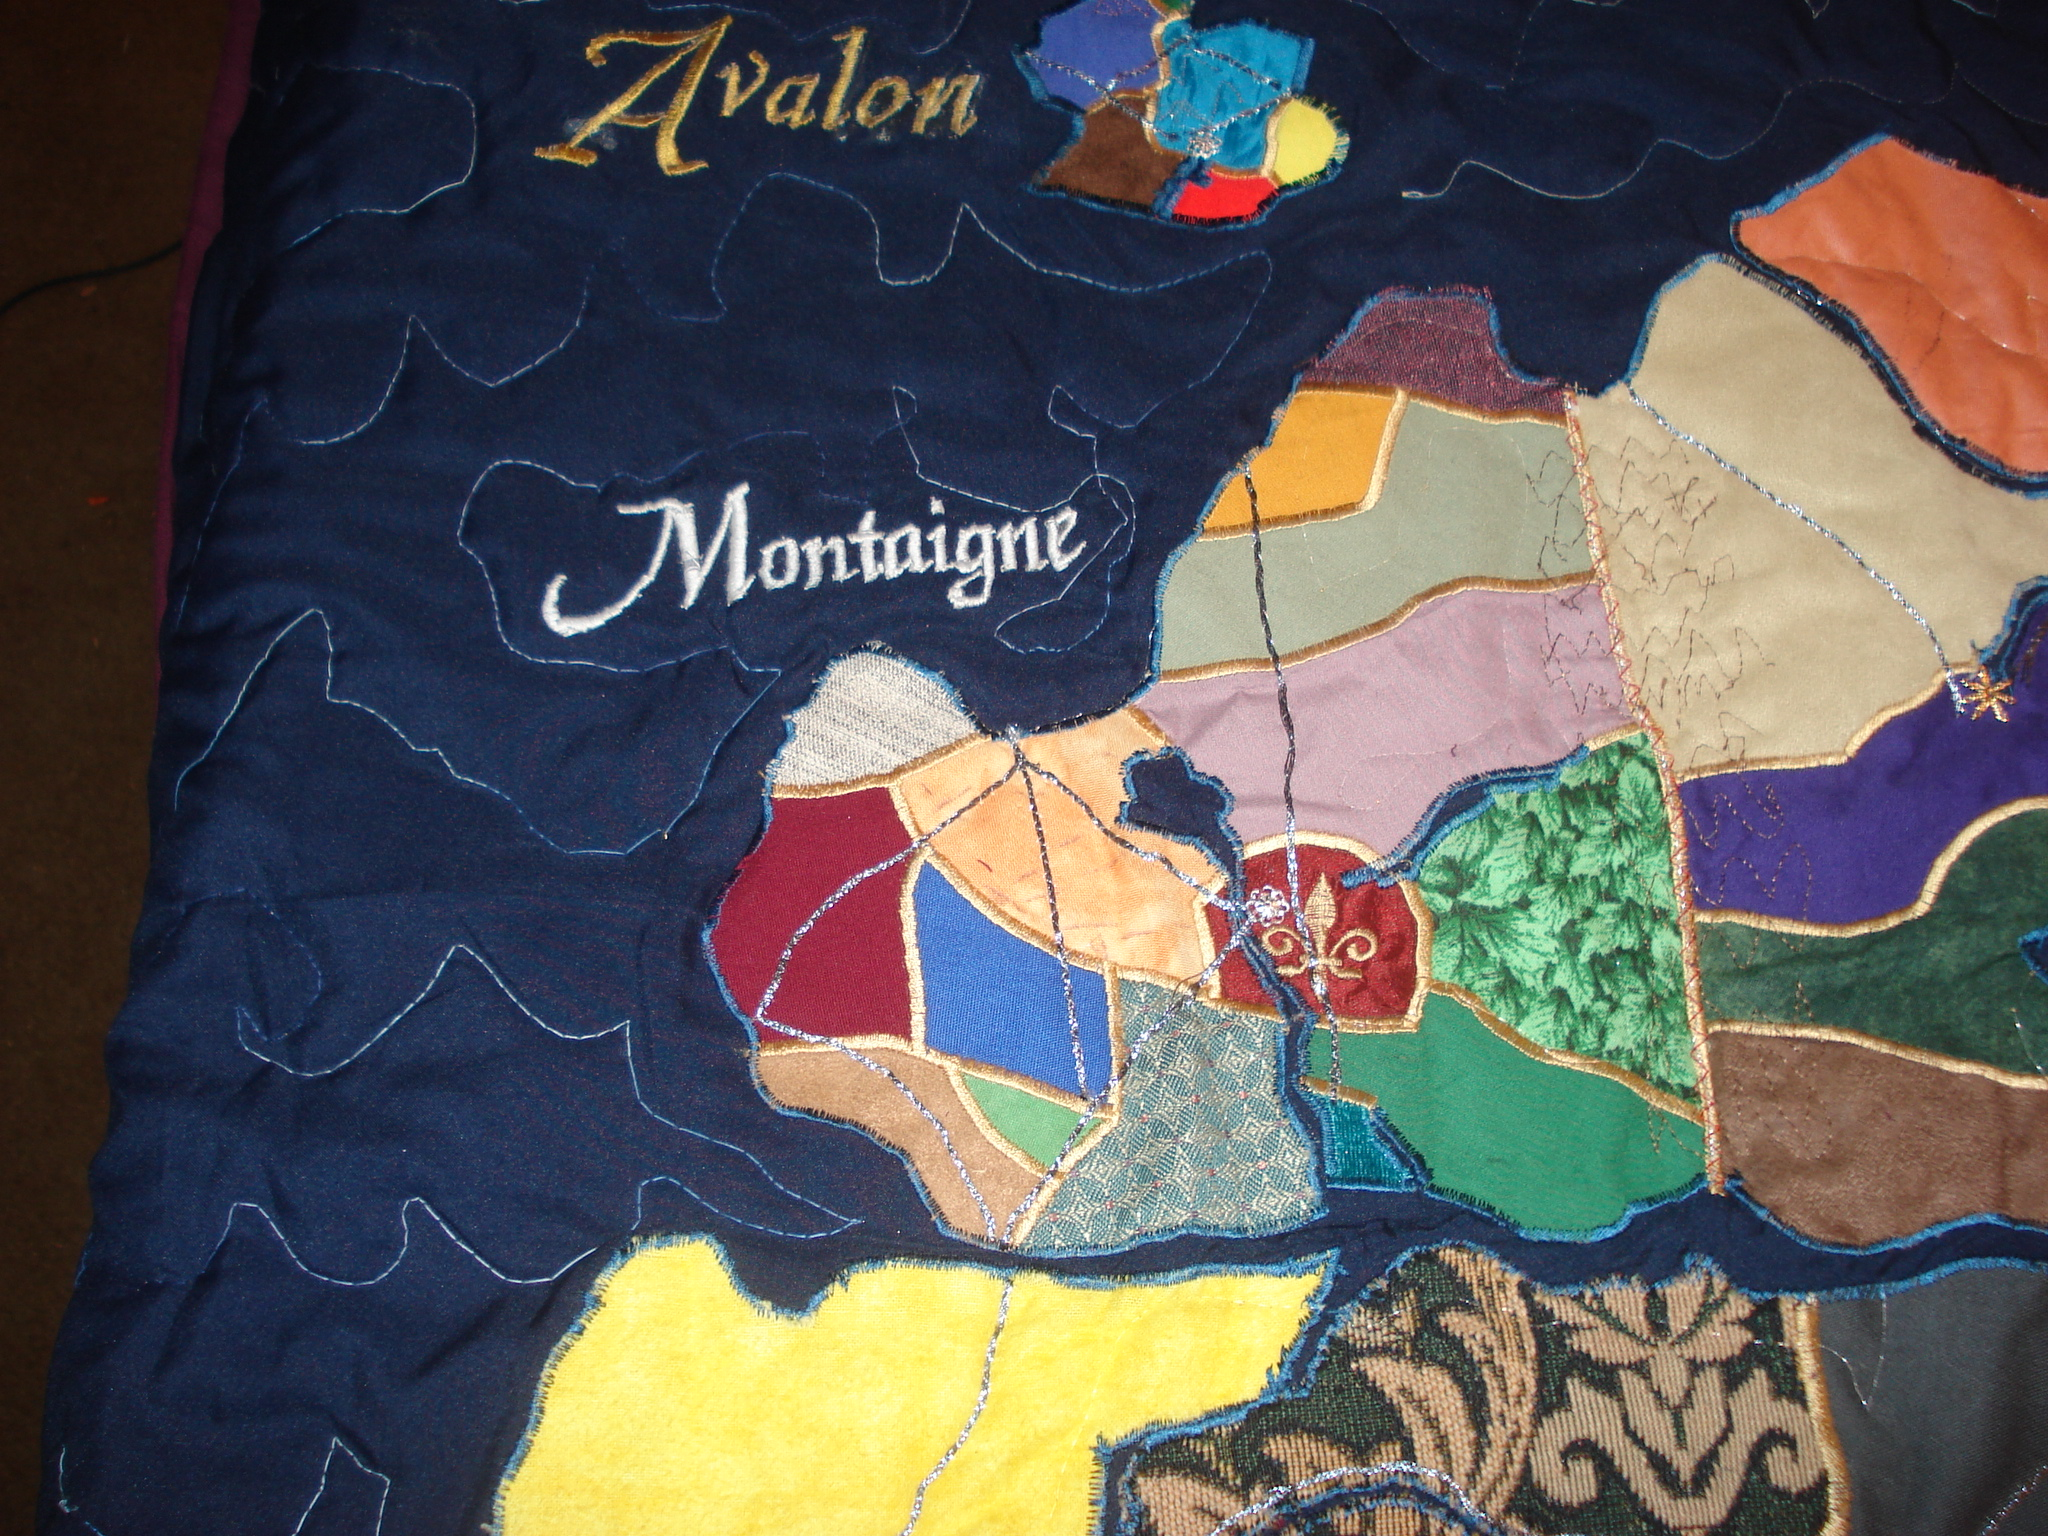 Montaigne - France.  Came together well, but the river up the center made it flex a bit.